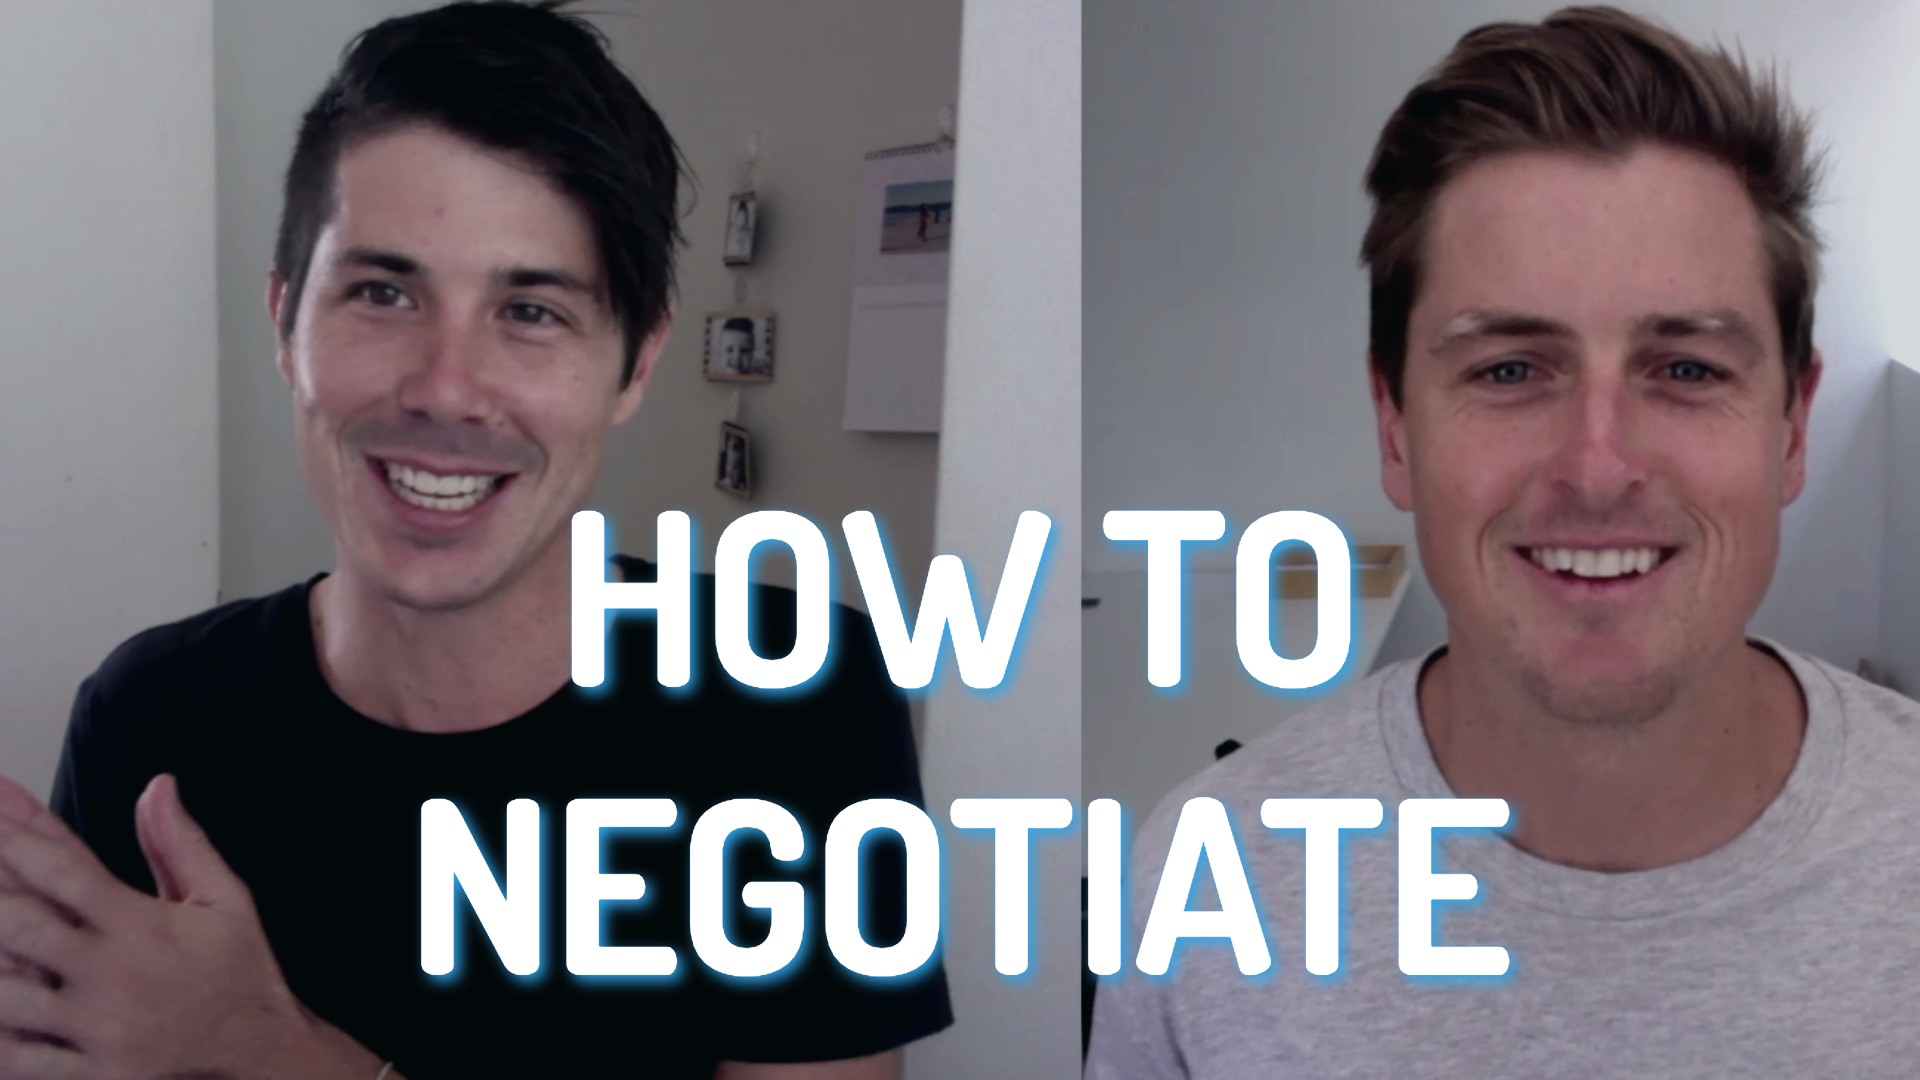 Step-by-Step Exactly How To Negotiate on an Investment Property